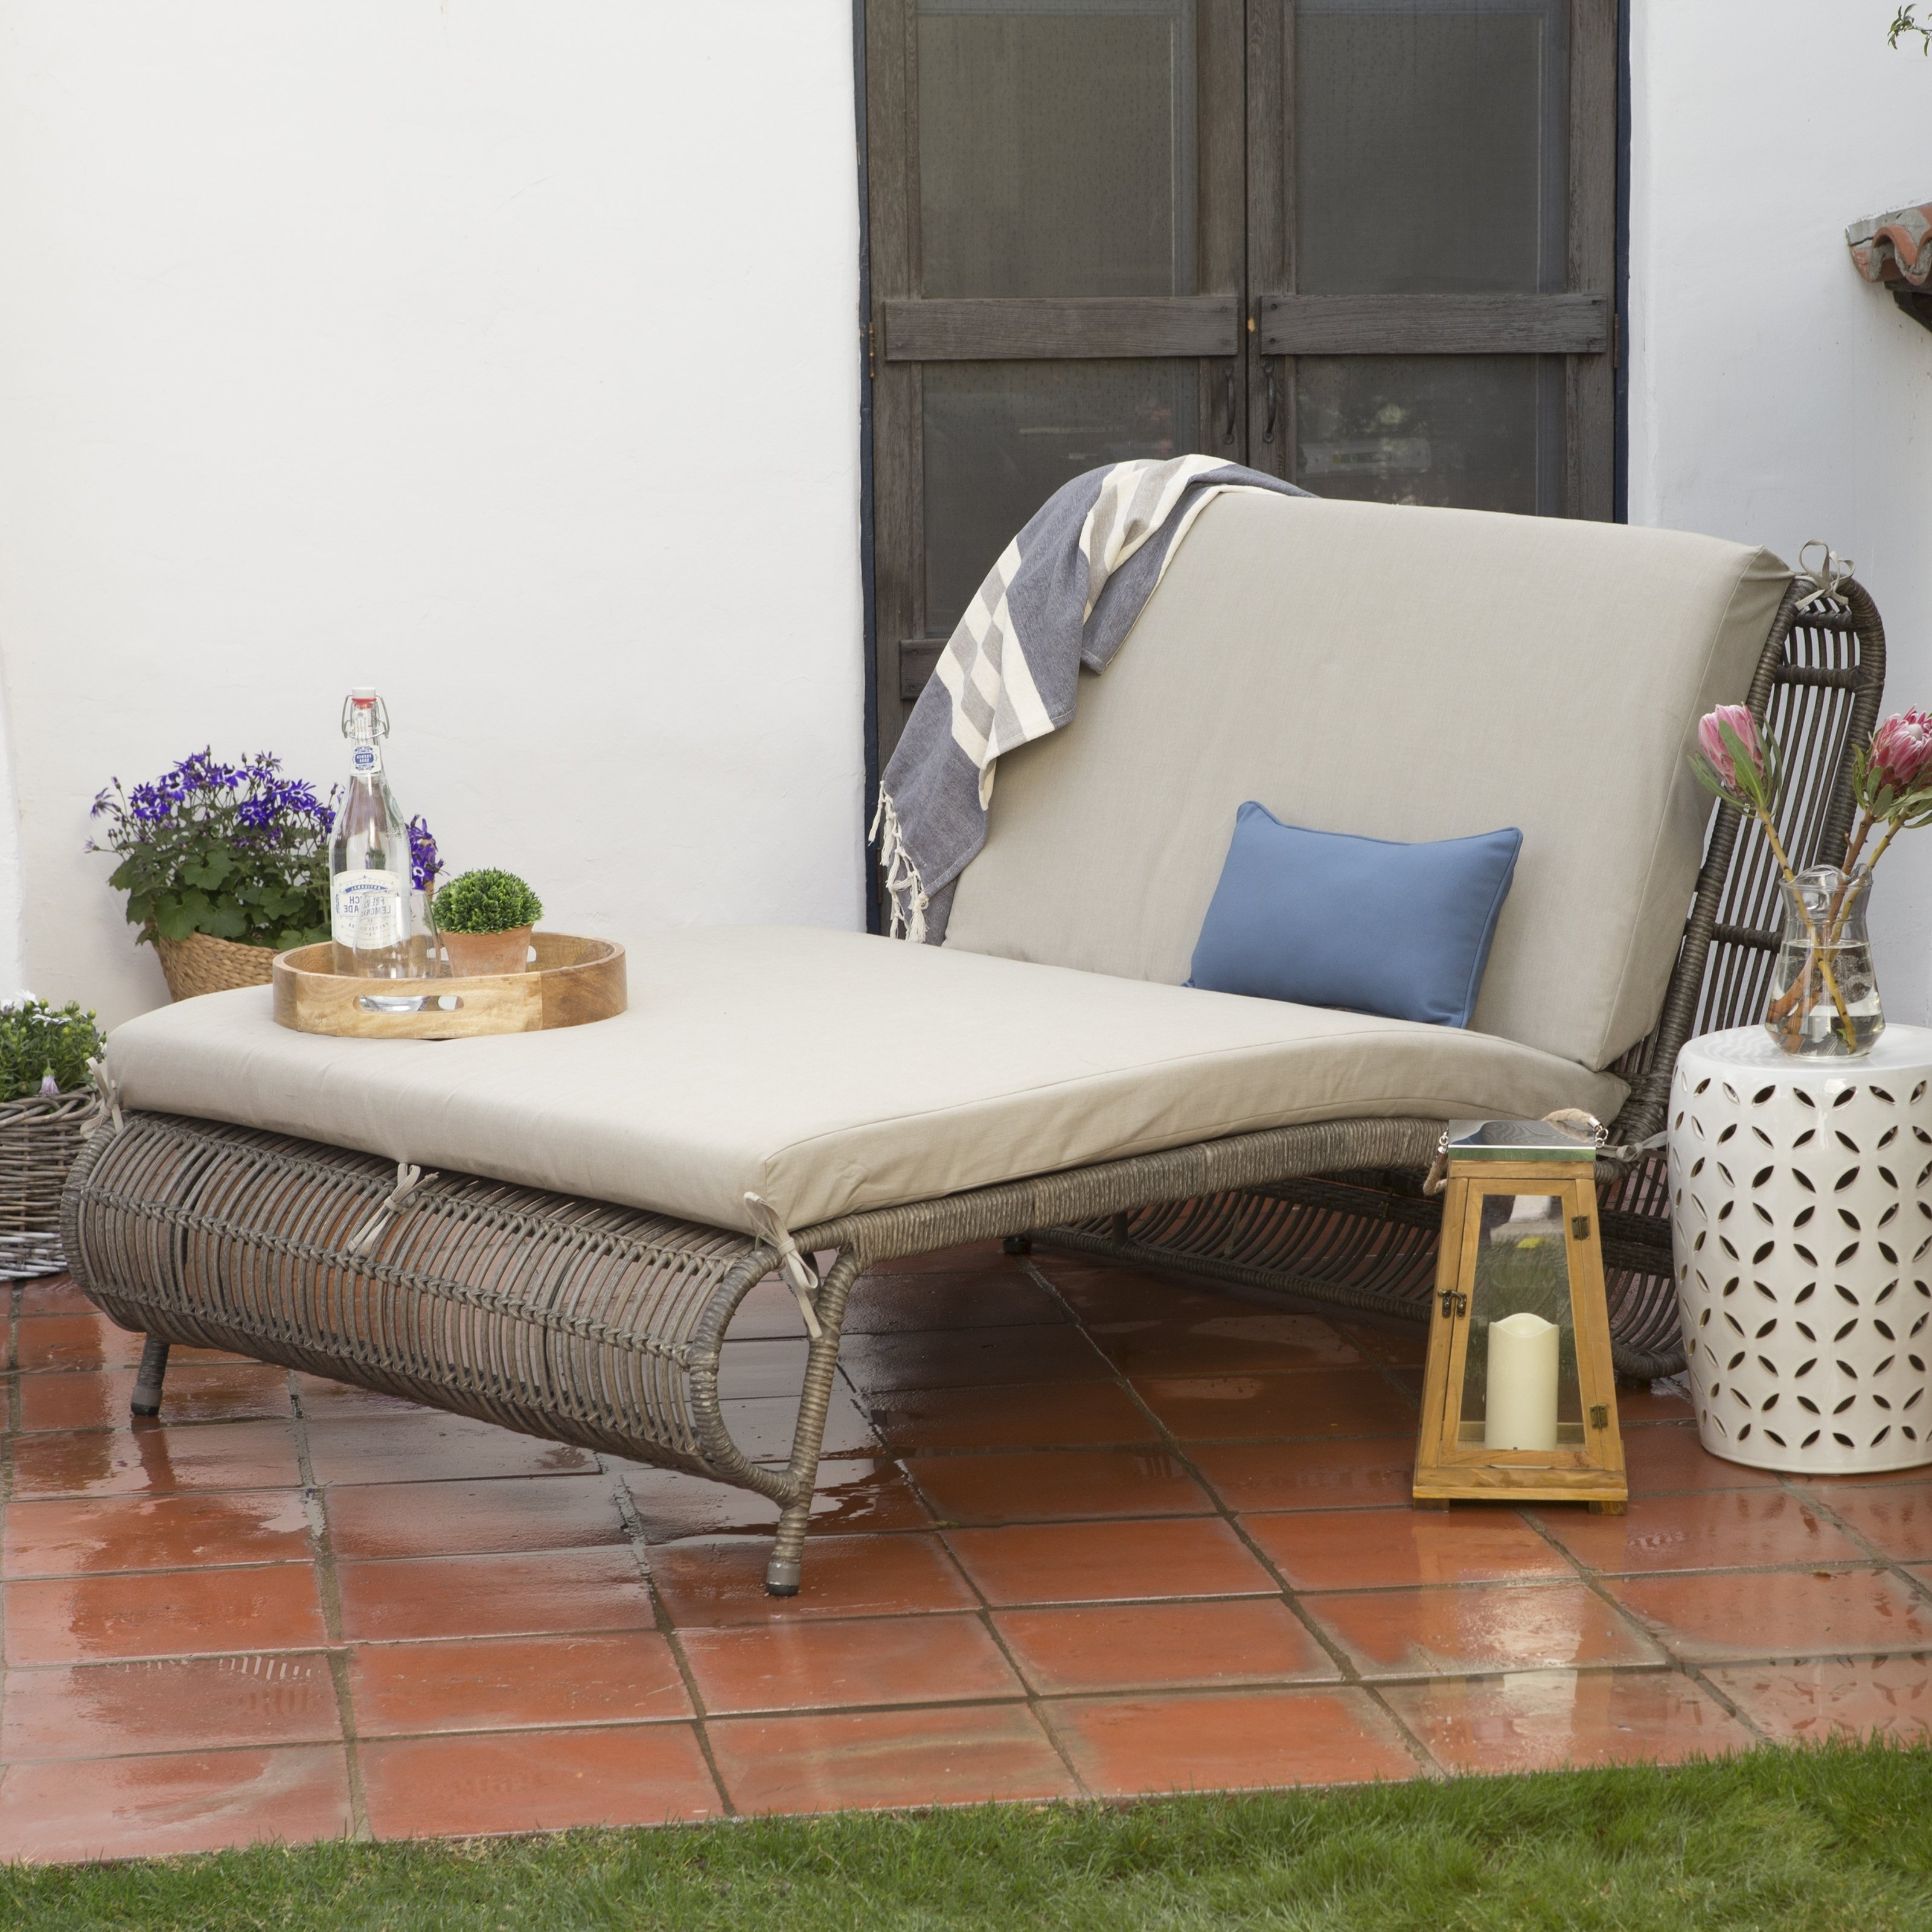 Double Outdoor Chaise Lounges Throughout Well Known Lounge Chair : Lounge Discount Outdoor Chaise Lounge Outdoor (View 15 of 15)